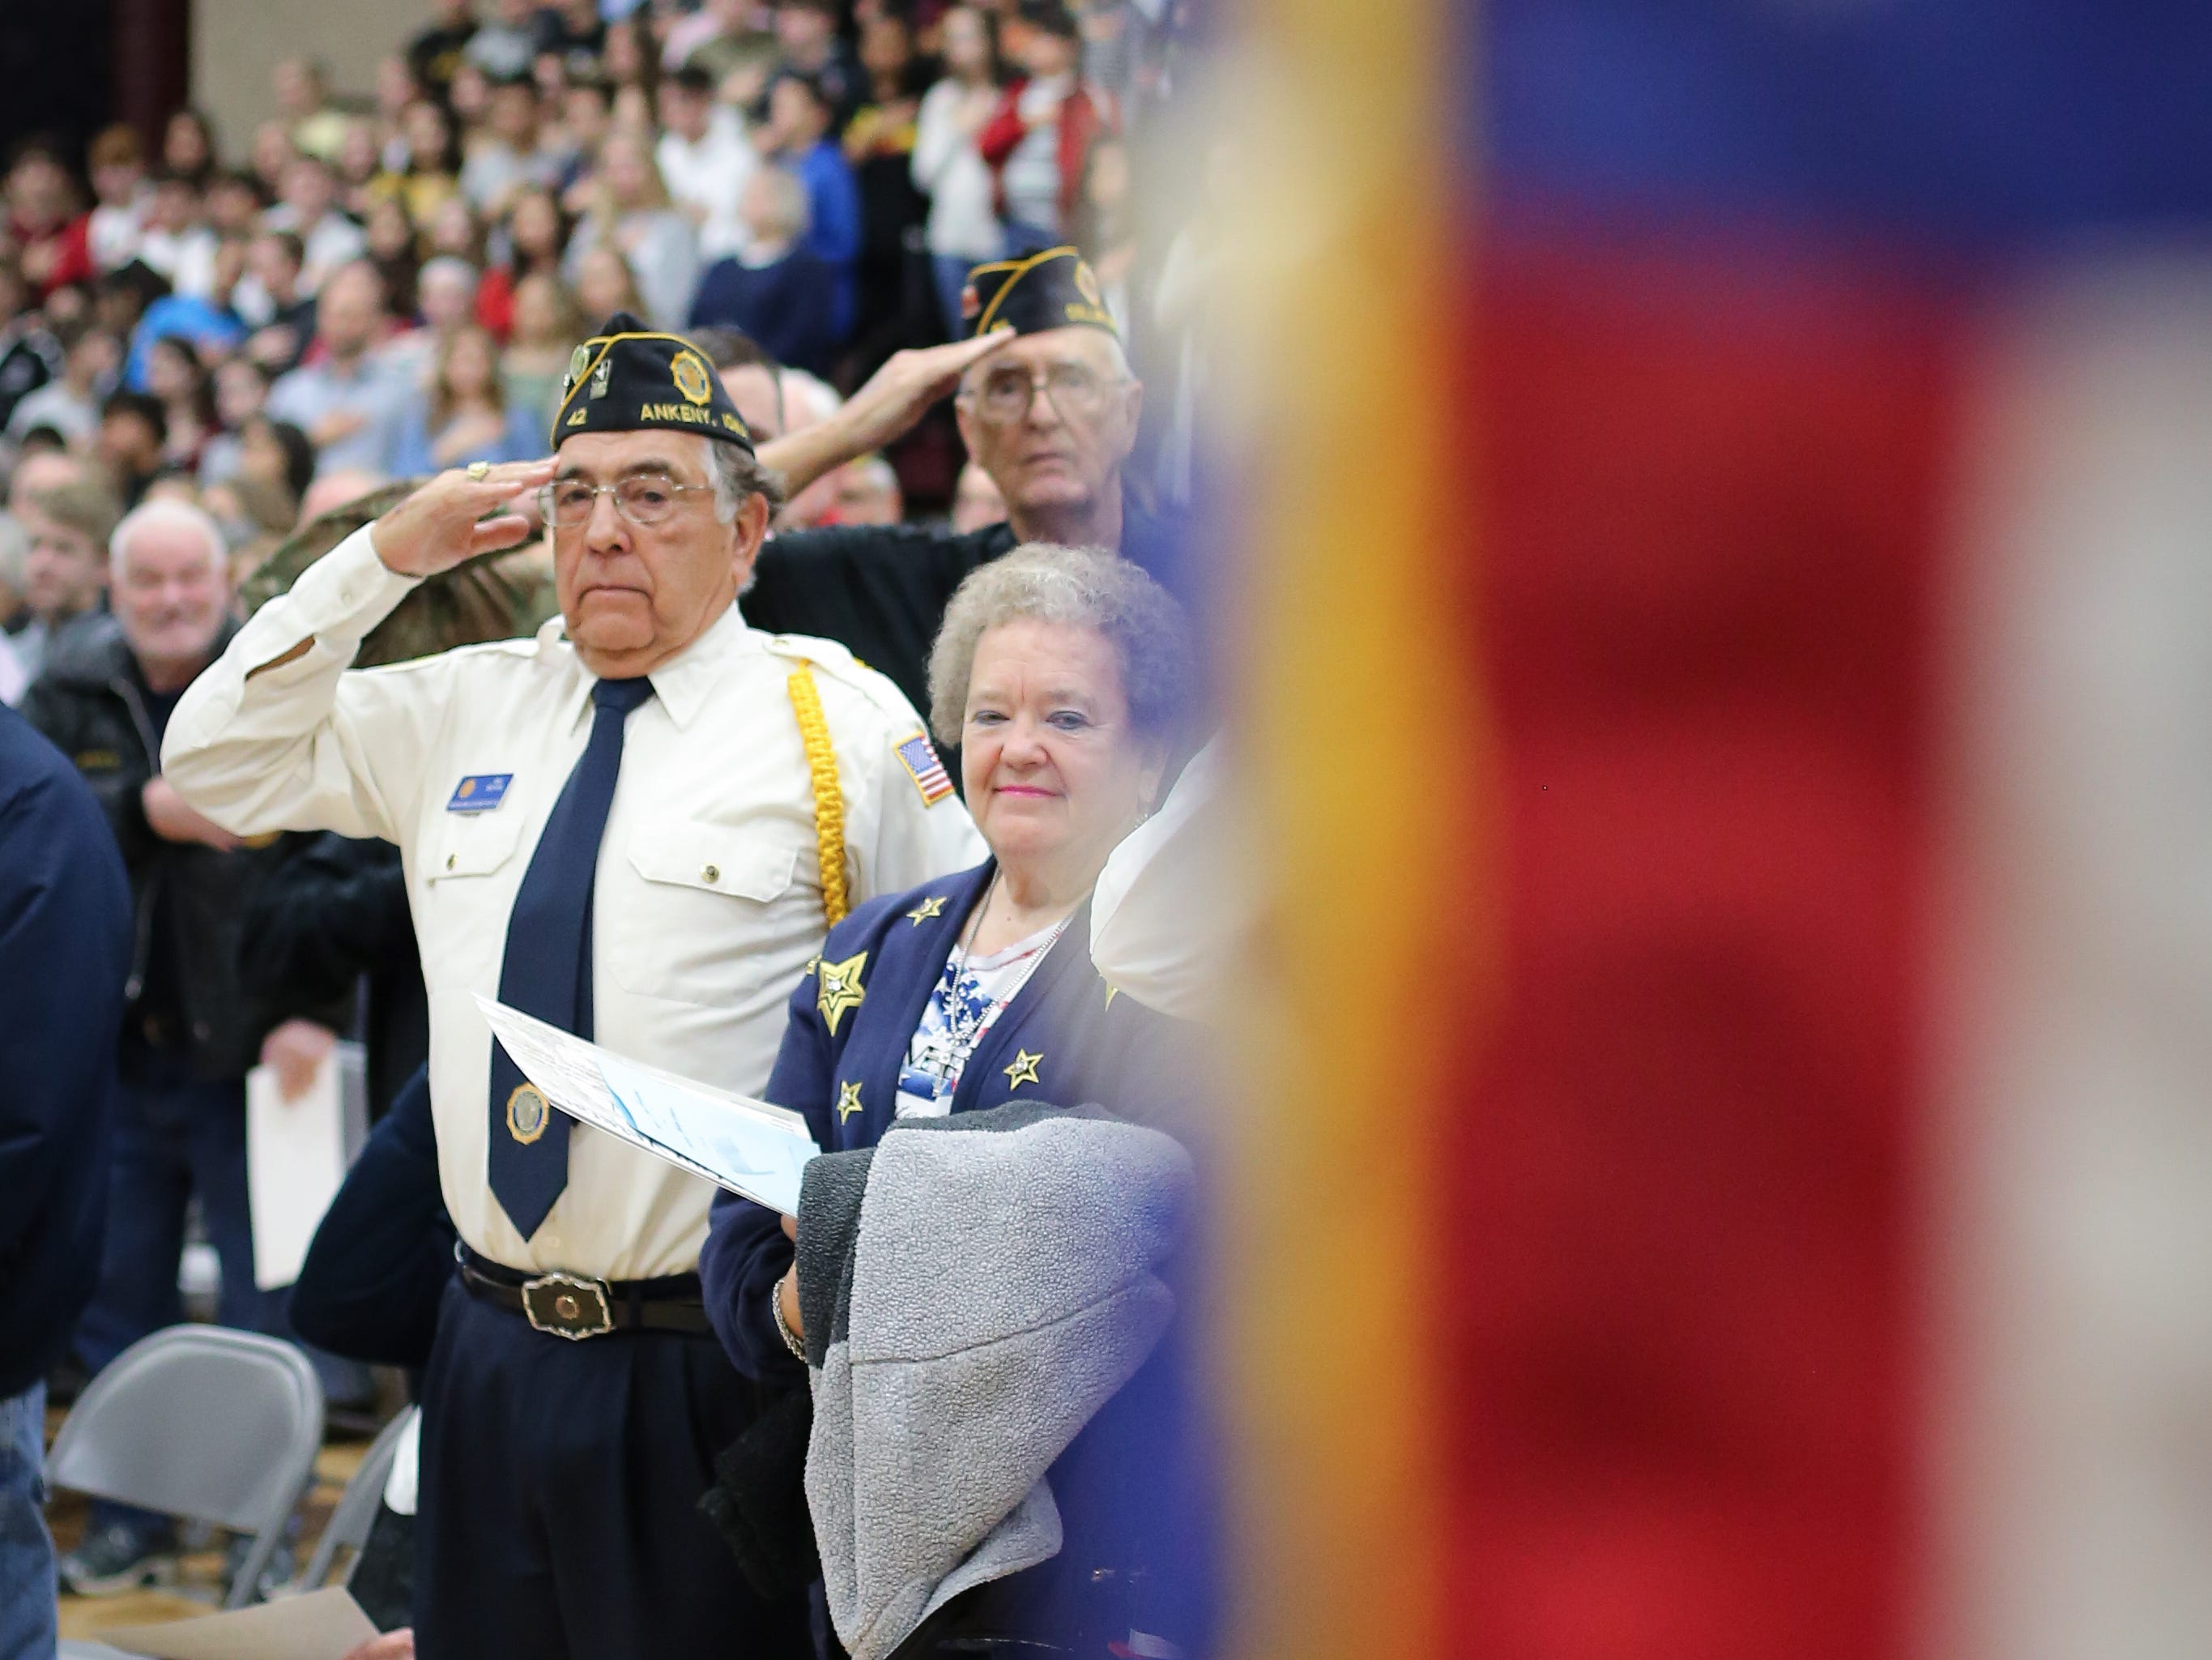 A veteran salutes to the United States flag during the national anthem at the Veterans Day Breakfast at Northview Middle School on Wednesday, Nov. 14, 2018 in Ankeny, Iowa. Middle school students hosted the veterans to share their gratitude before an assembly.